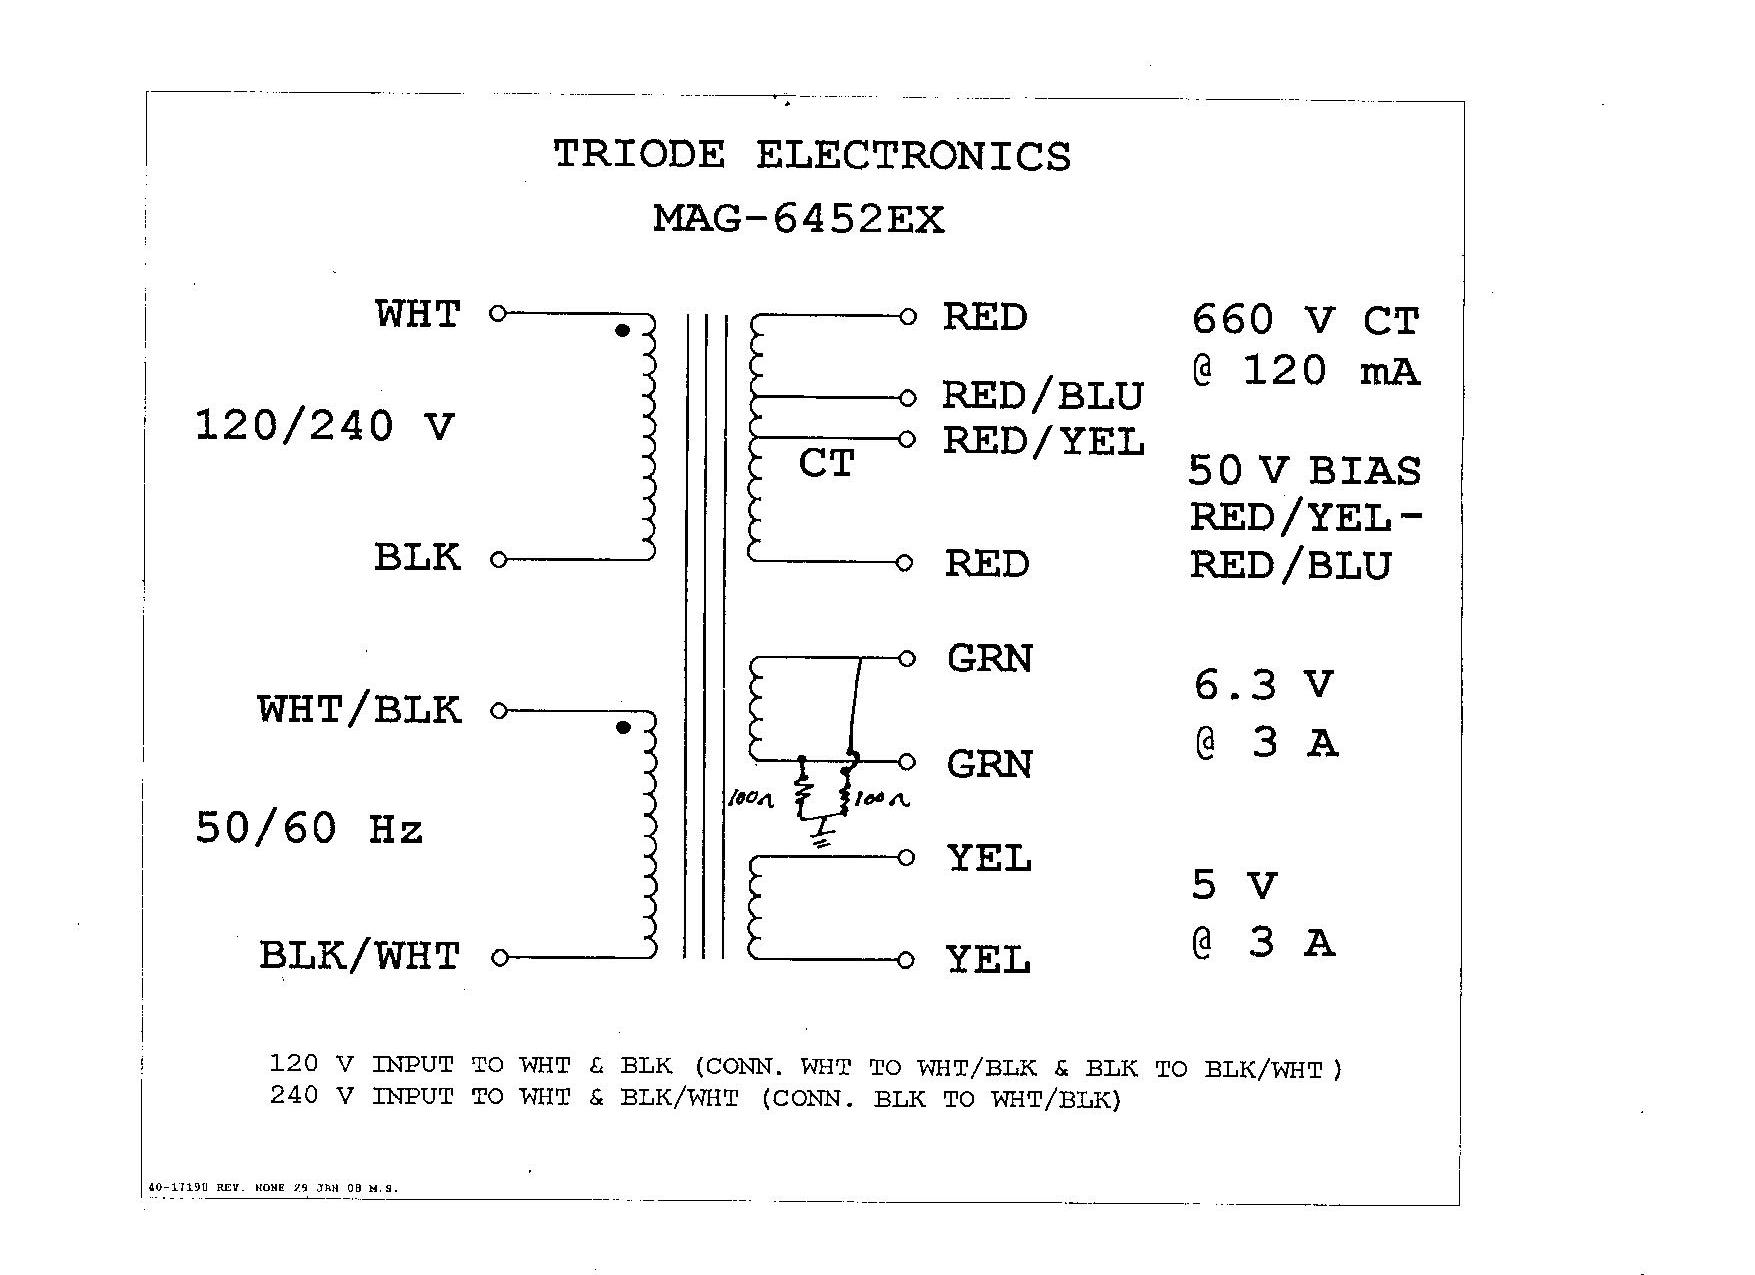 240v 3 Phase Wye Wiring Diagram Free Picture Library 480 Vac Download Schematic To 240 Transformer Engine Image For User Manual Diagrams